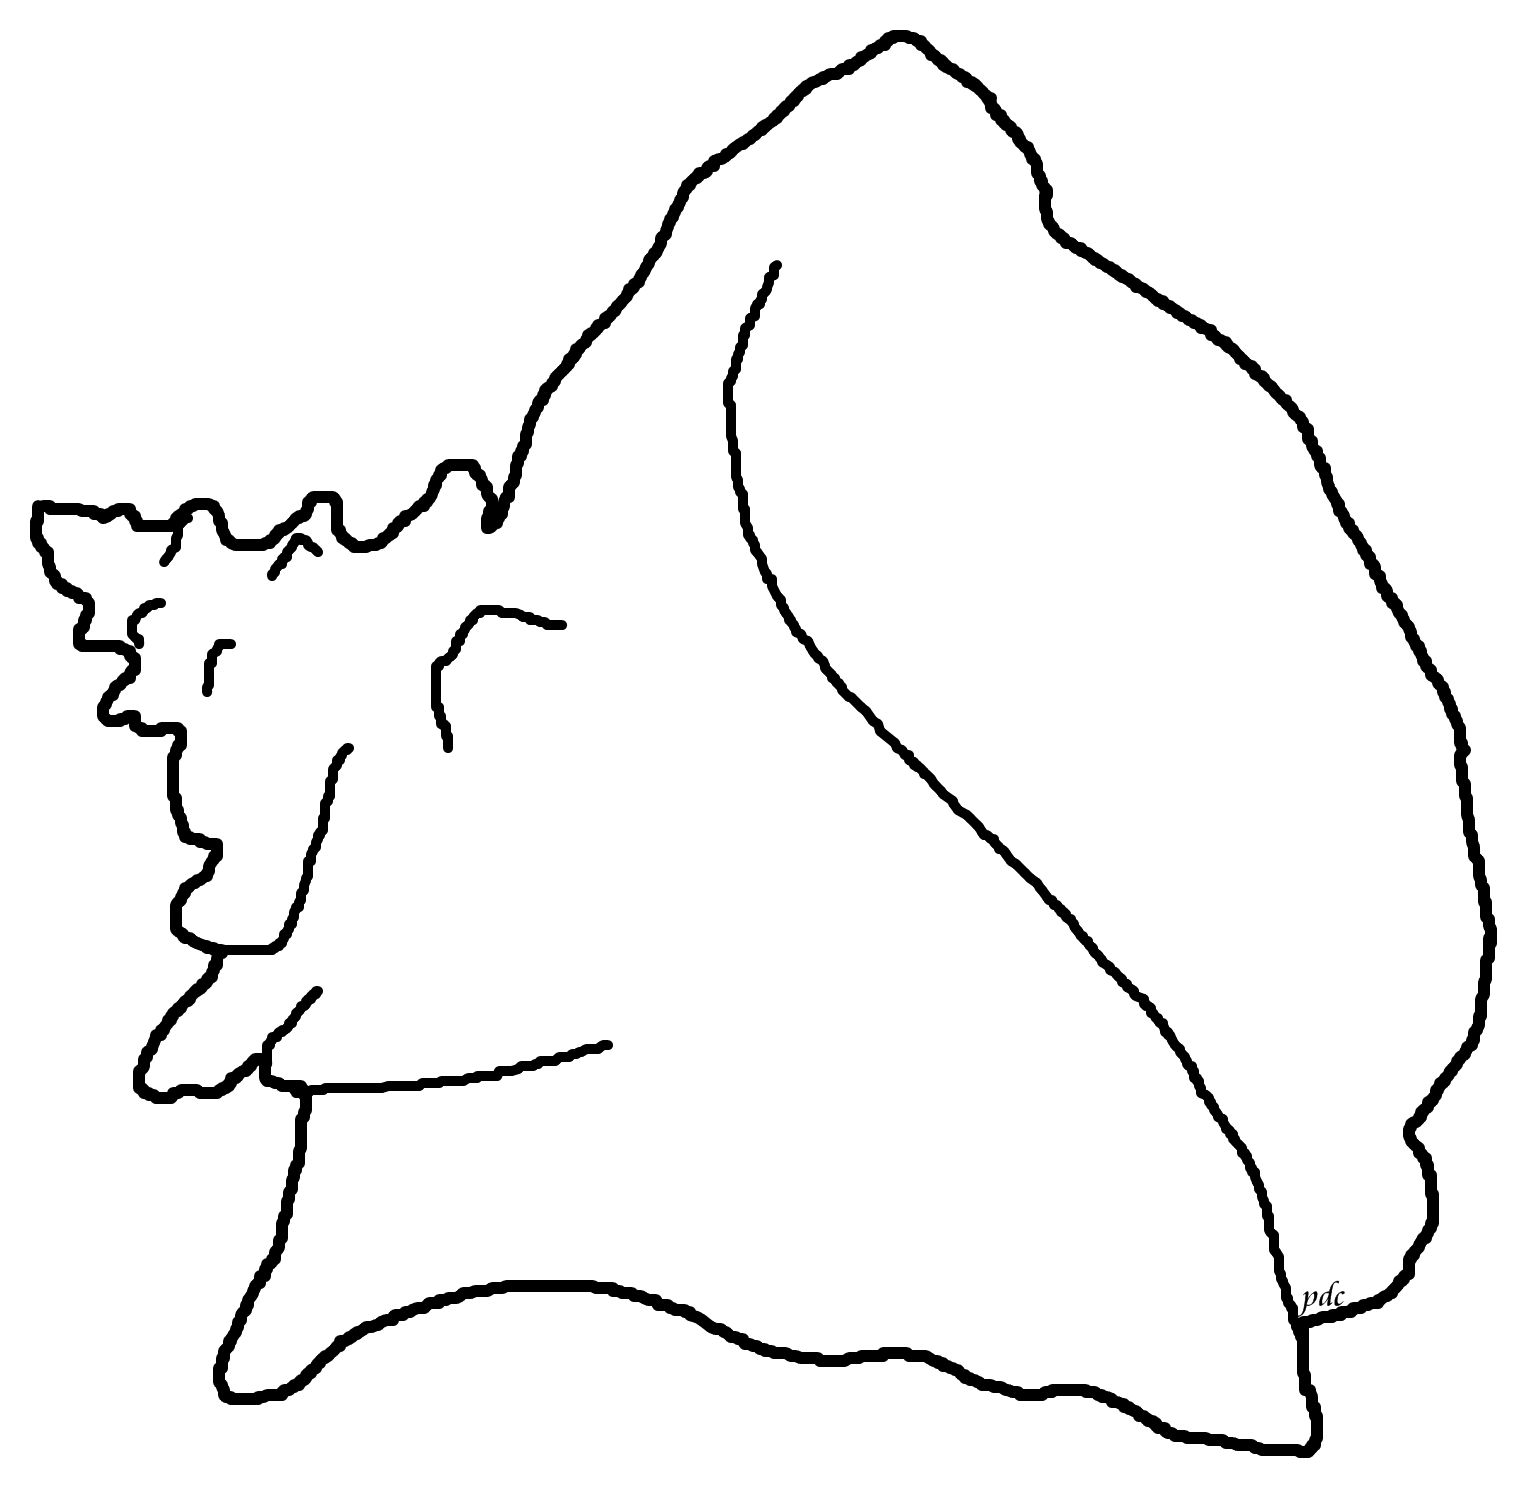 Coloring pages starfish intermediate - How To Draw Conch Shell Queen Or Pink Conch Coloring Page Seashells